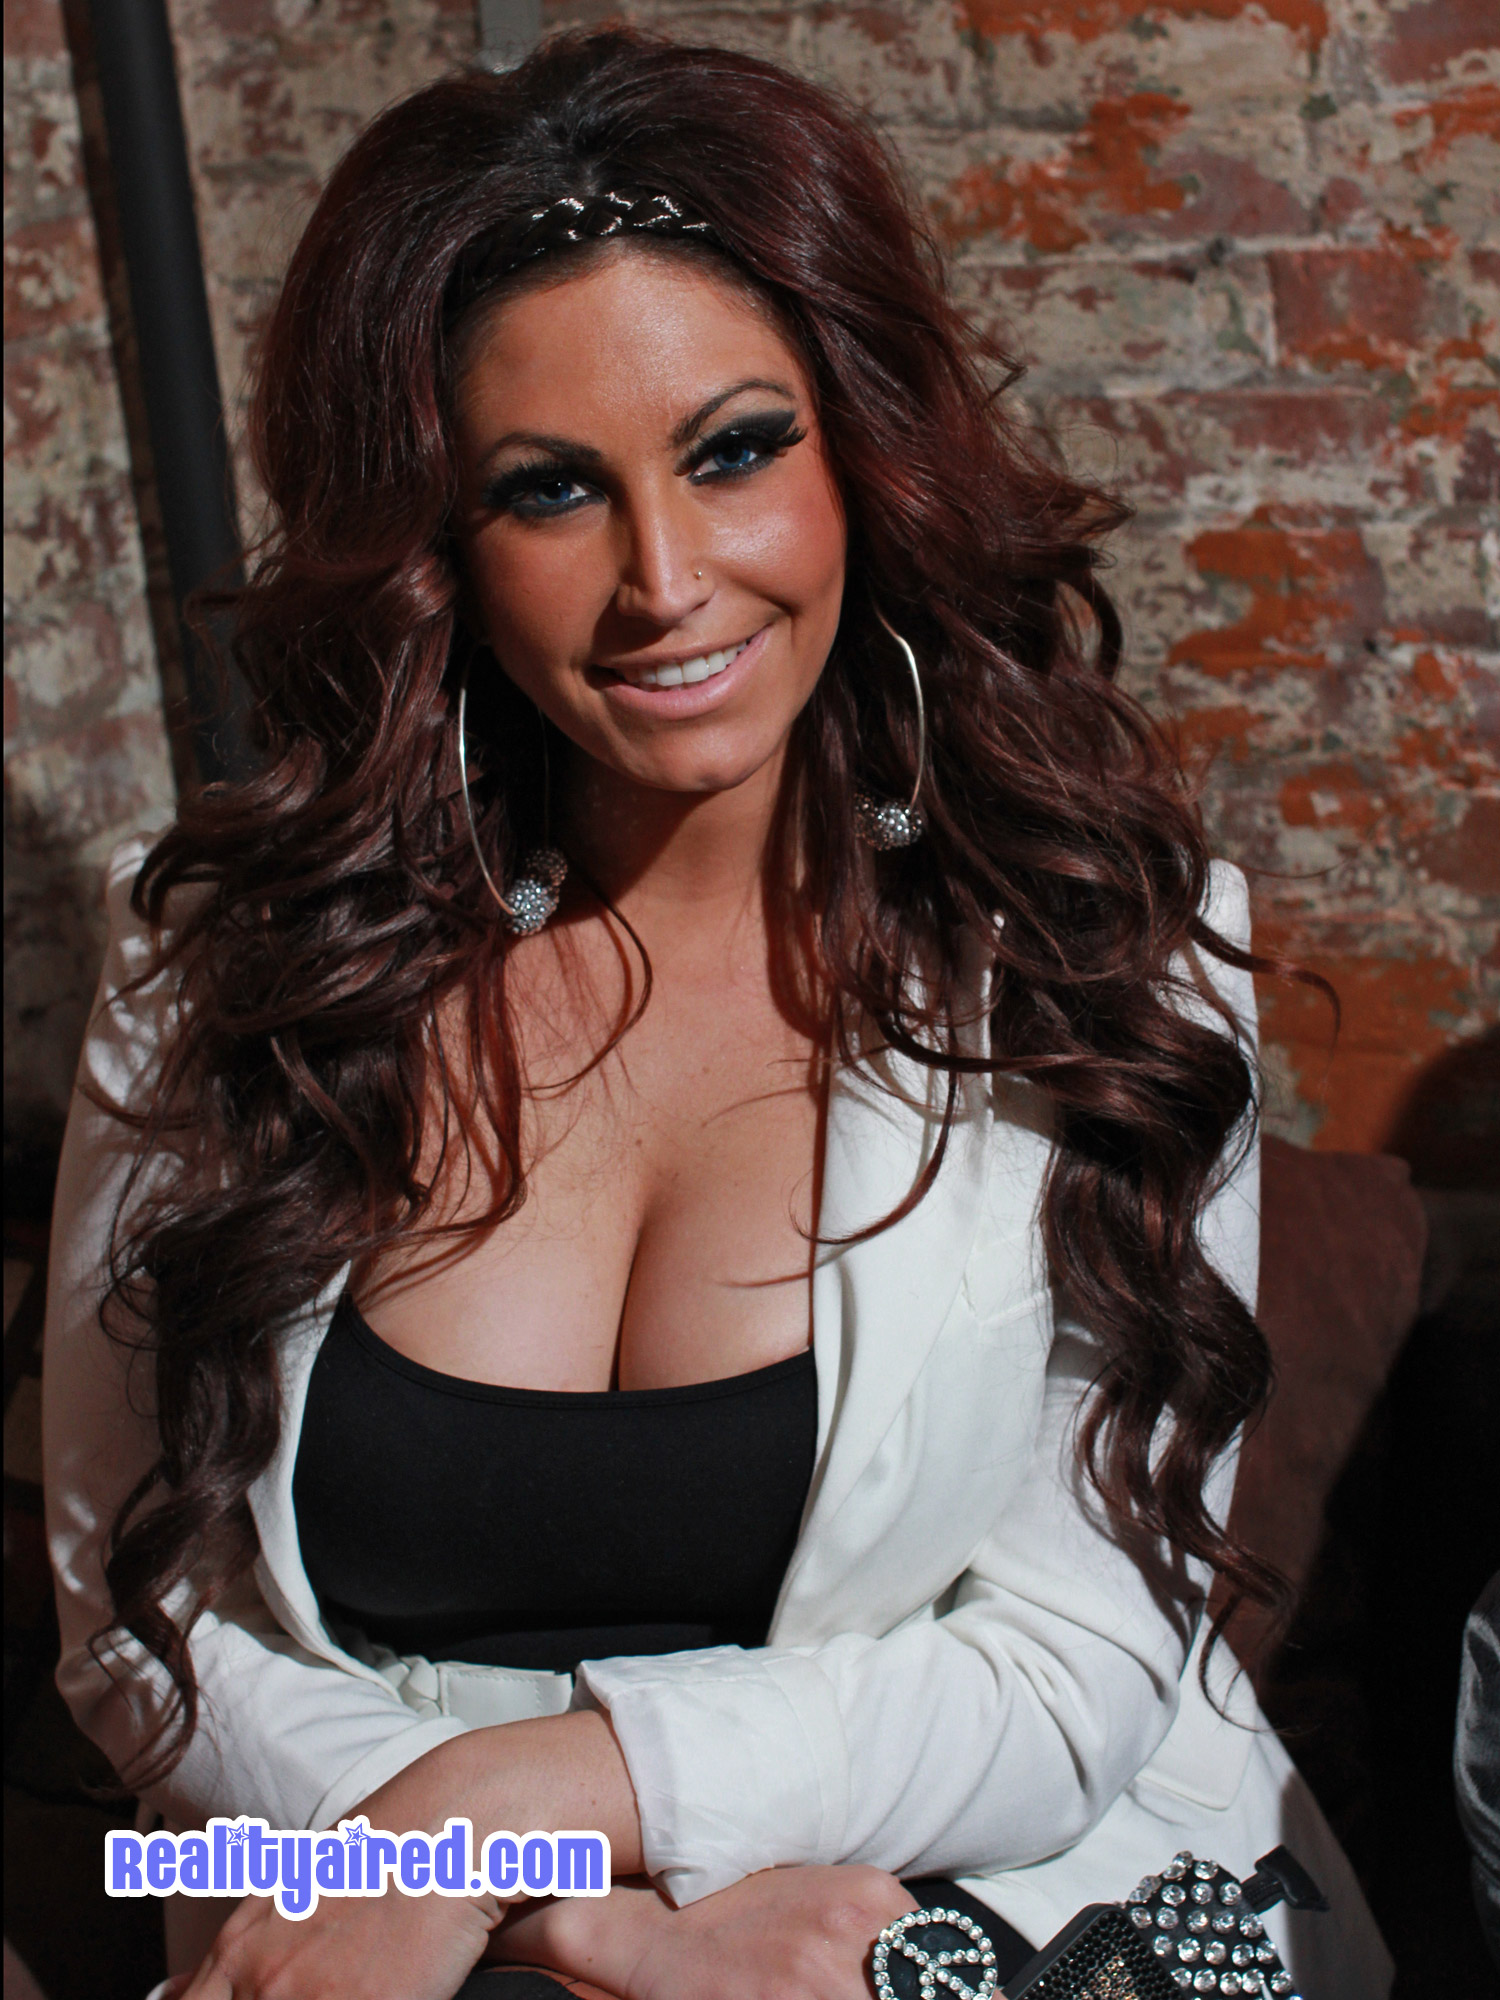 Photos Tracy Dimarco nudes (72 photo), Sexy, Bikini, Twitter, panties 2020